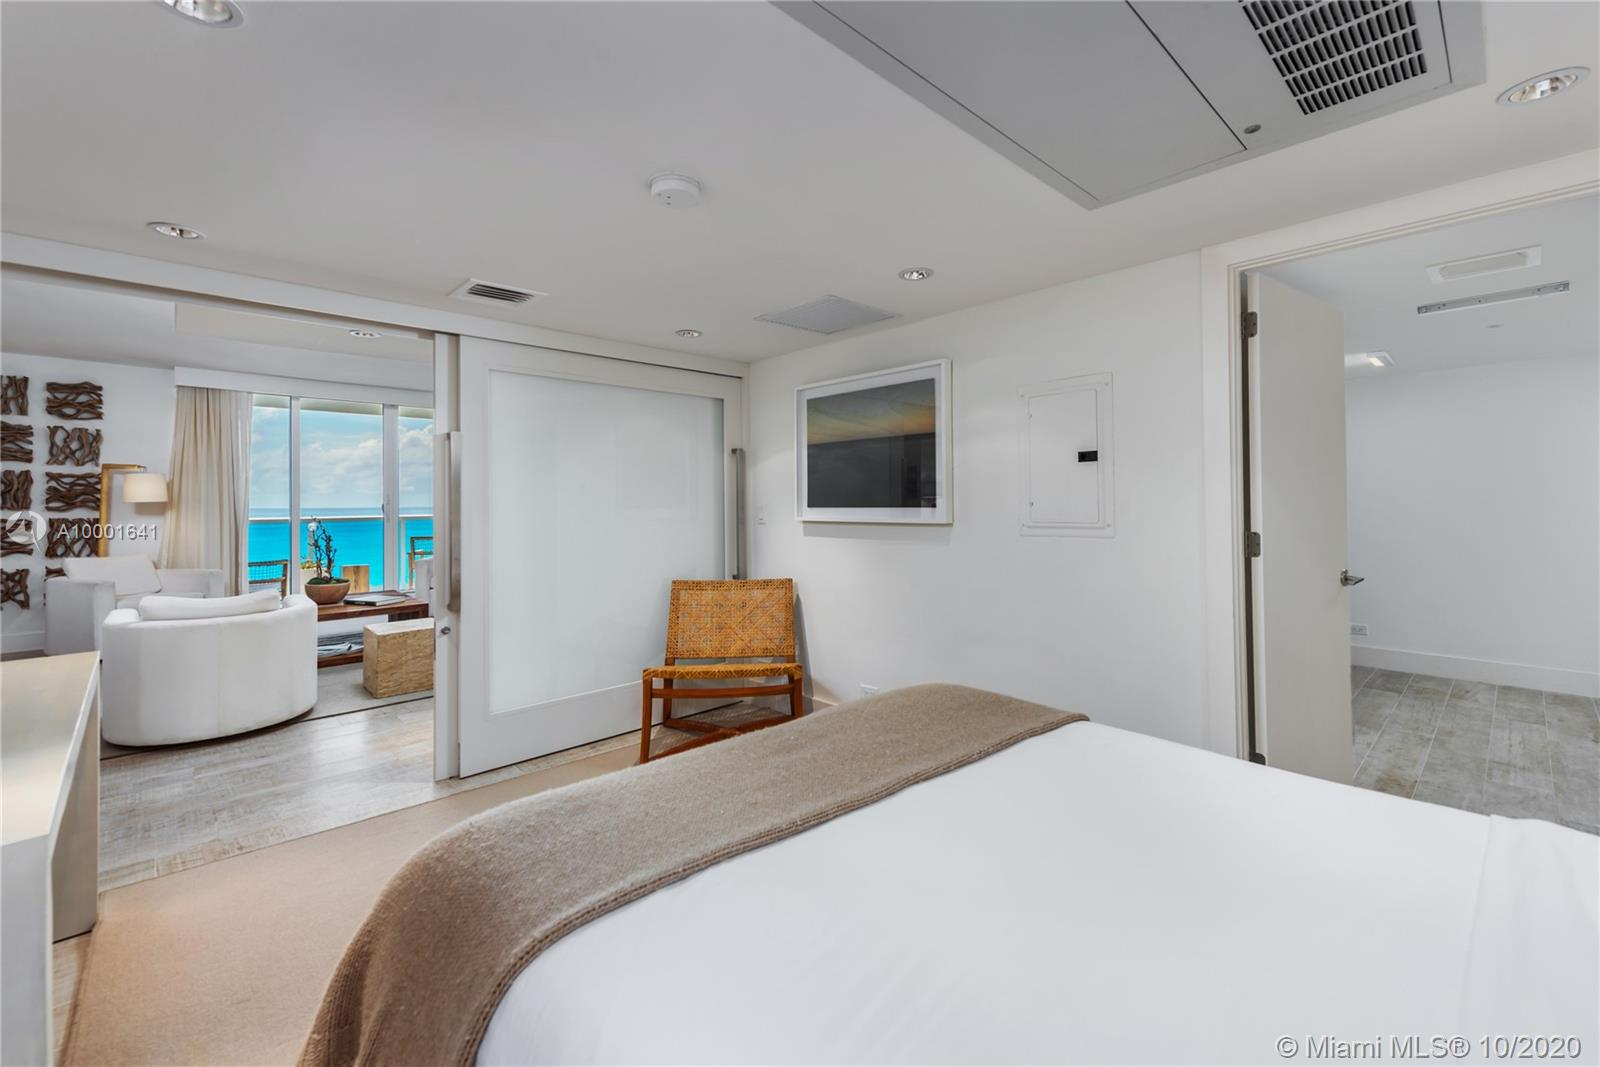 1 Hotel & Homes Unit #1040 | Picture 11